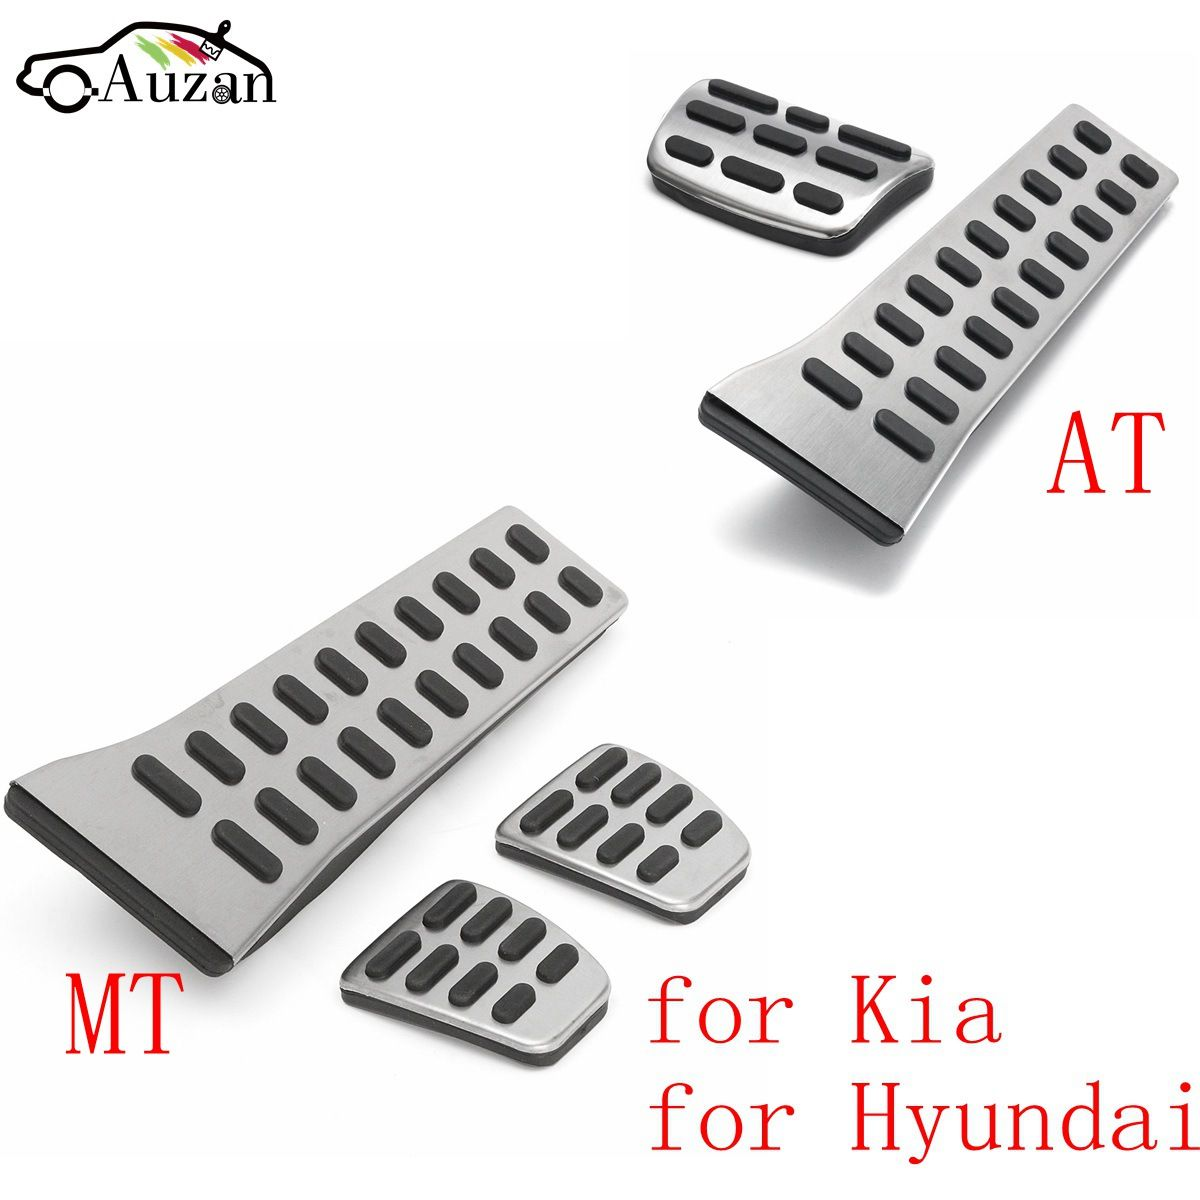 MT AT Car Accelerator Gas Fuel Brake Clutch Foot Pedal Cover For KIA Sportage QL 2016 2018 for Hyundai Sonata Fe